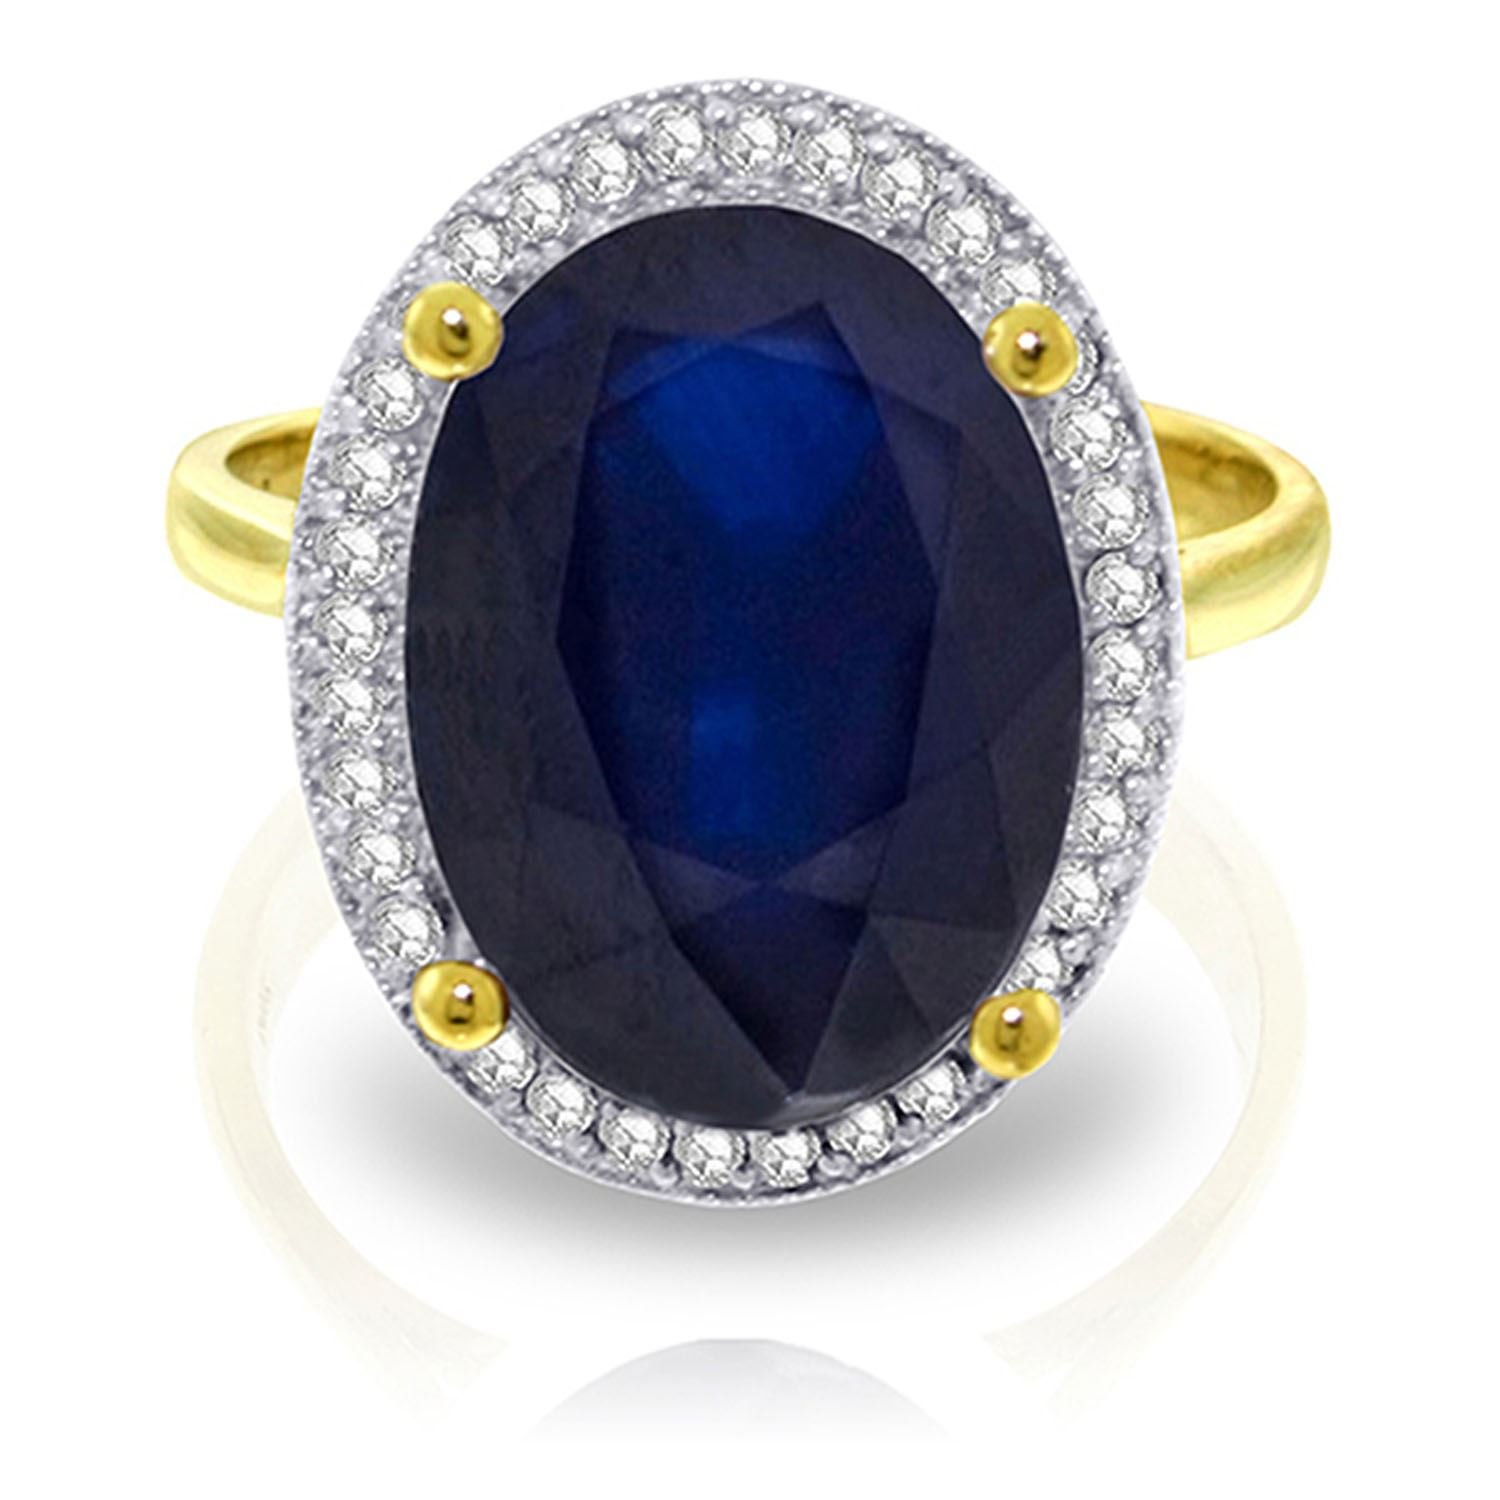 ALARRI 6.58 Carat 14K Solid Gold Love Doesn't Fluctuate Sapphire Diamond R With Ring Size 10